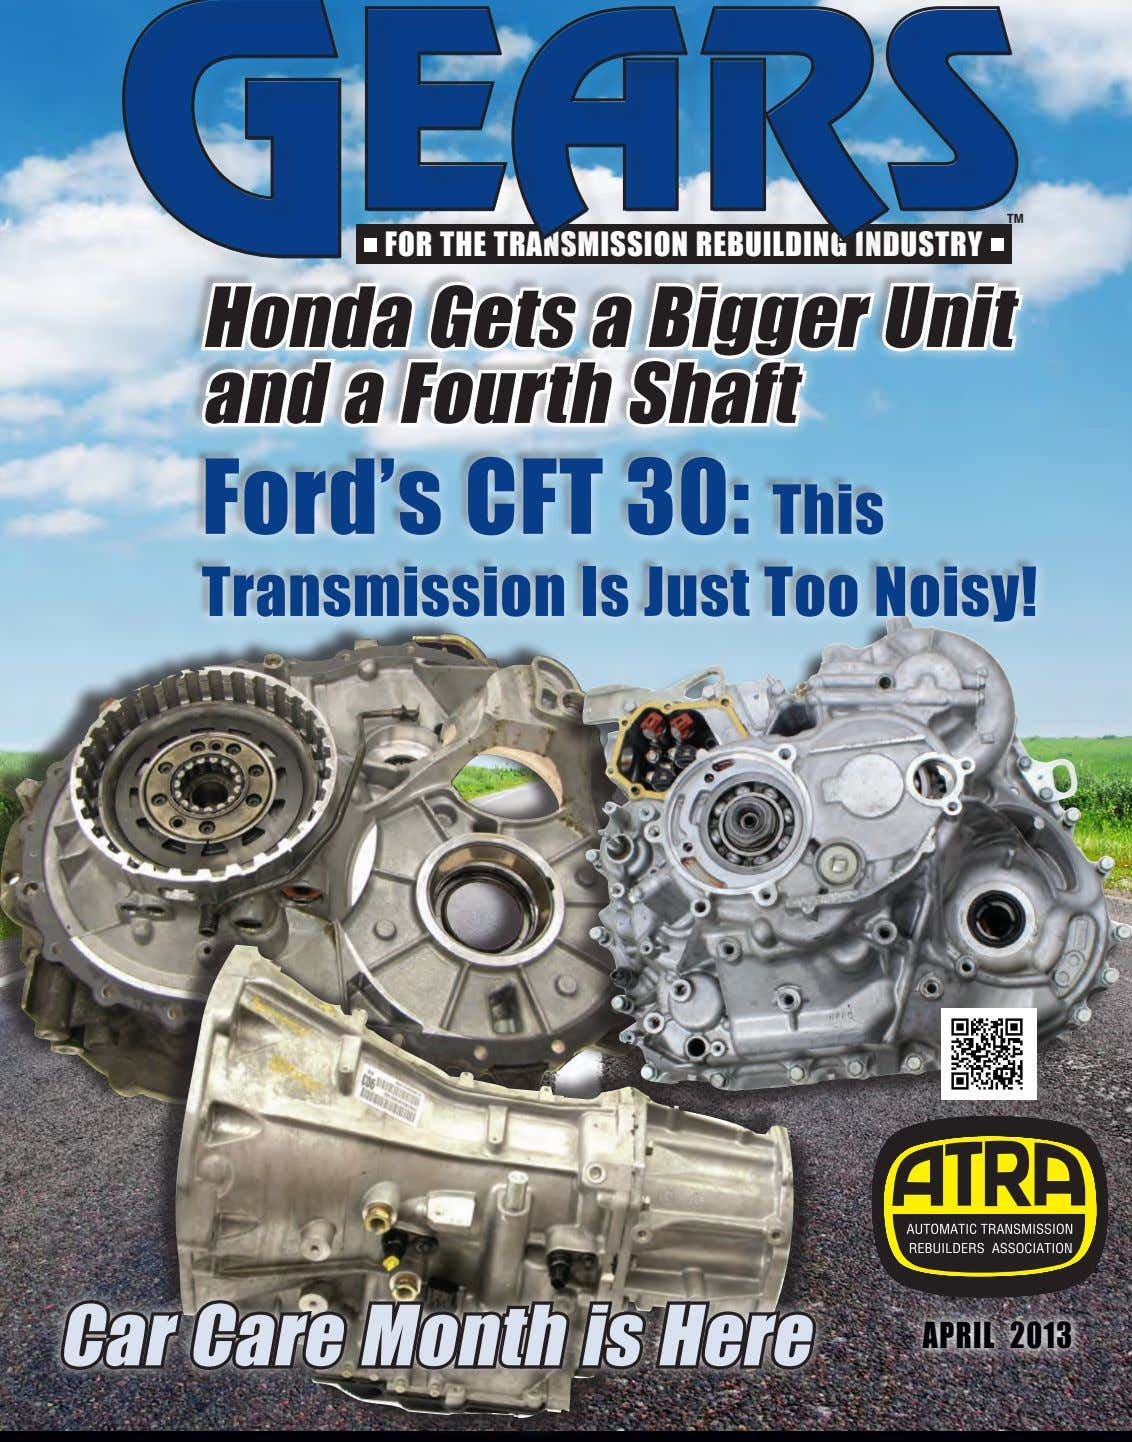 Honda Gets a Bigger Unit and a Fourth Shaft Ford's CFT 30: This Transmission Is